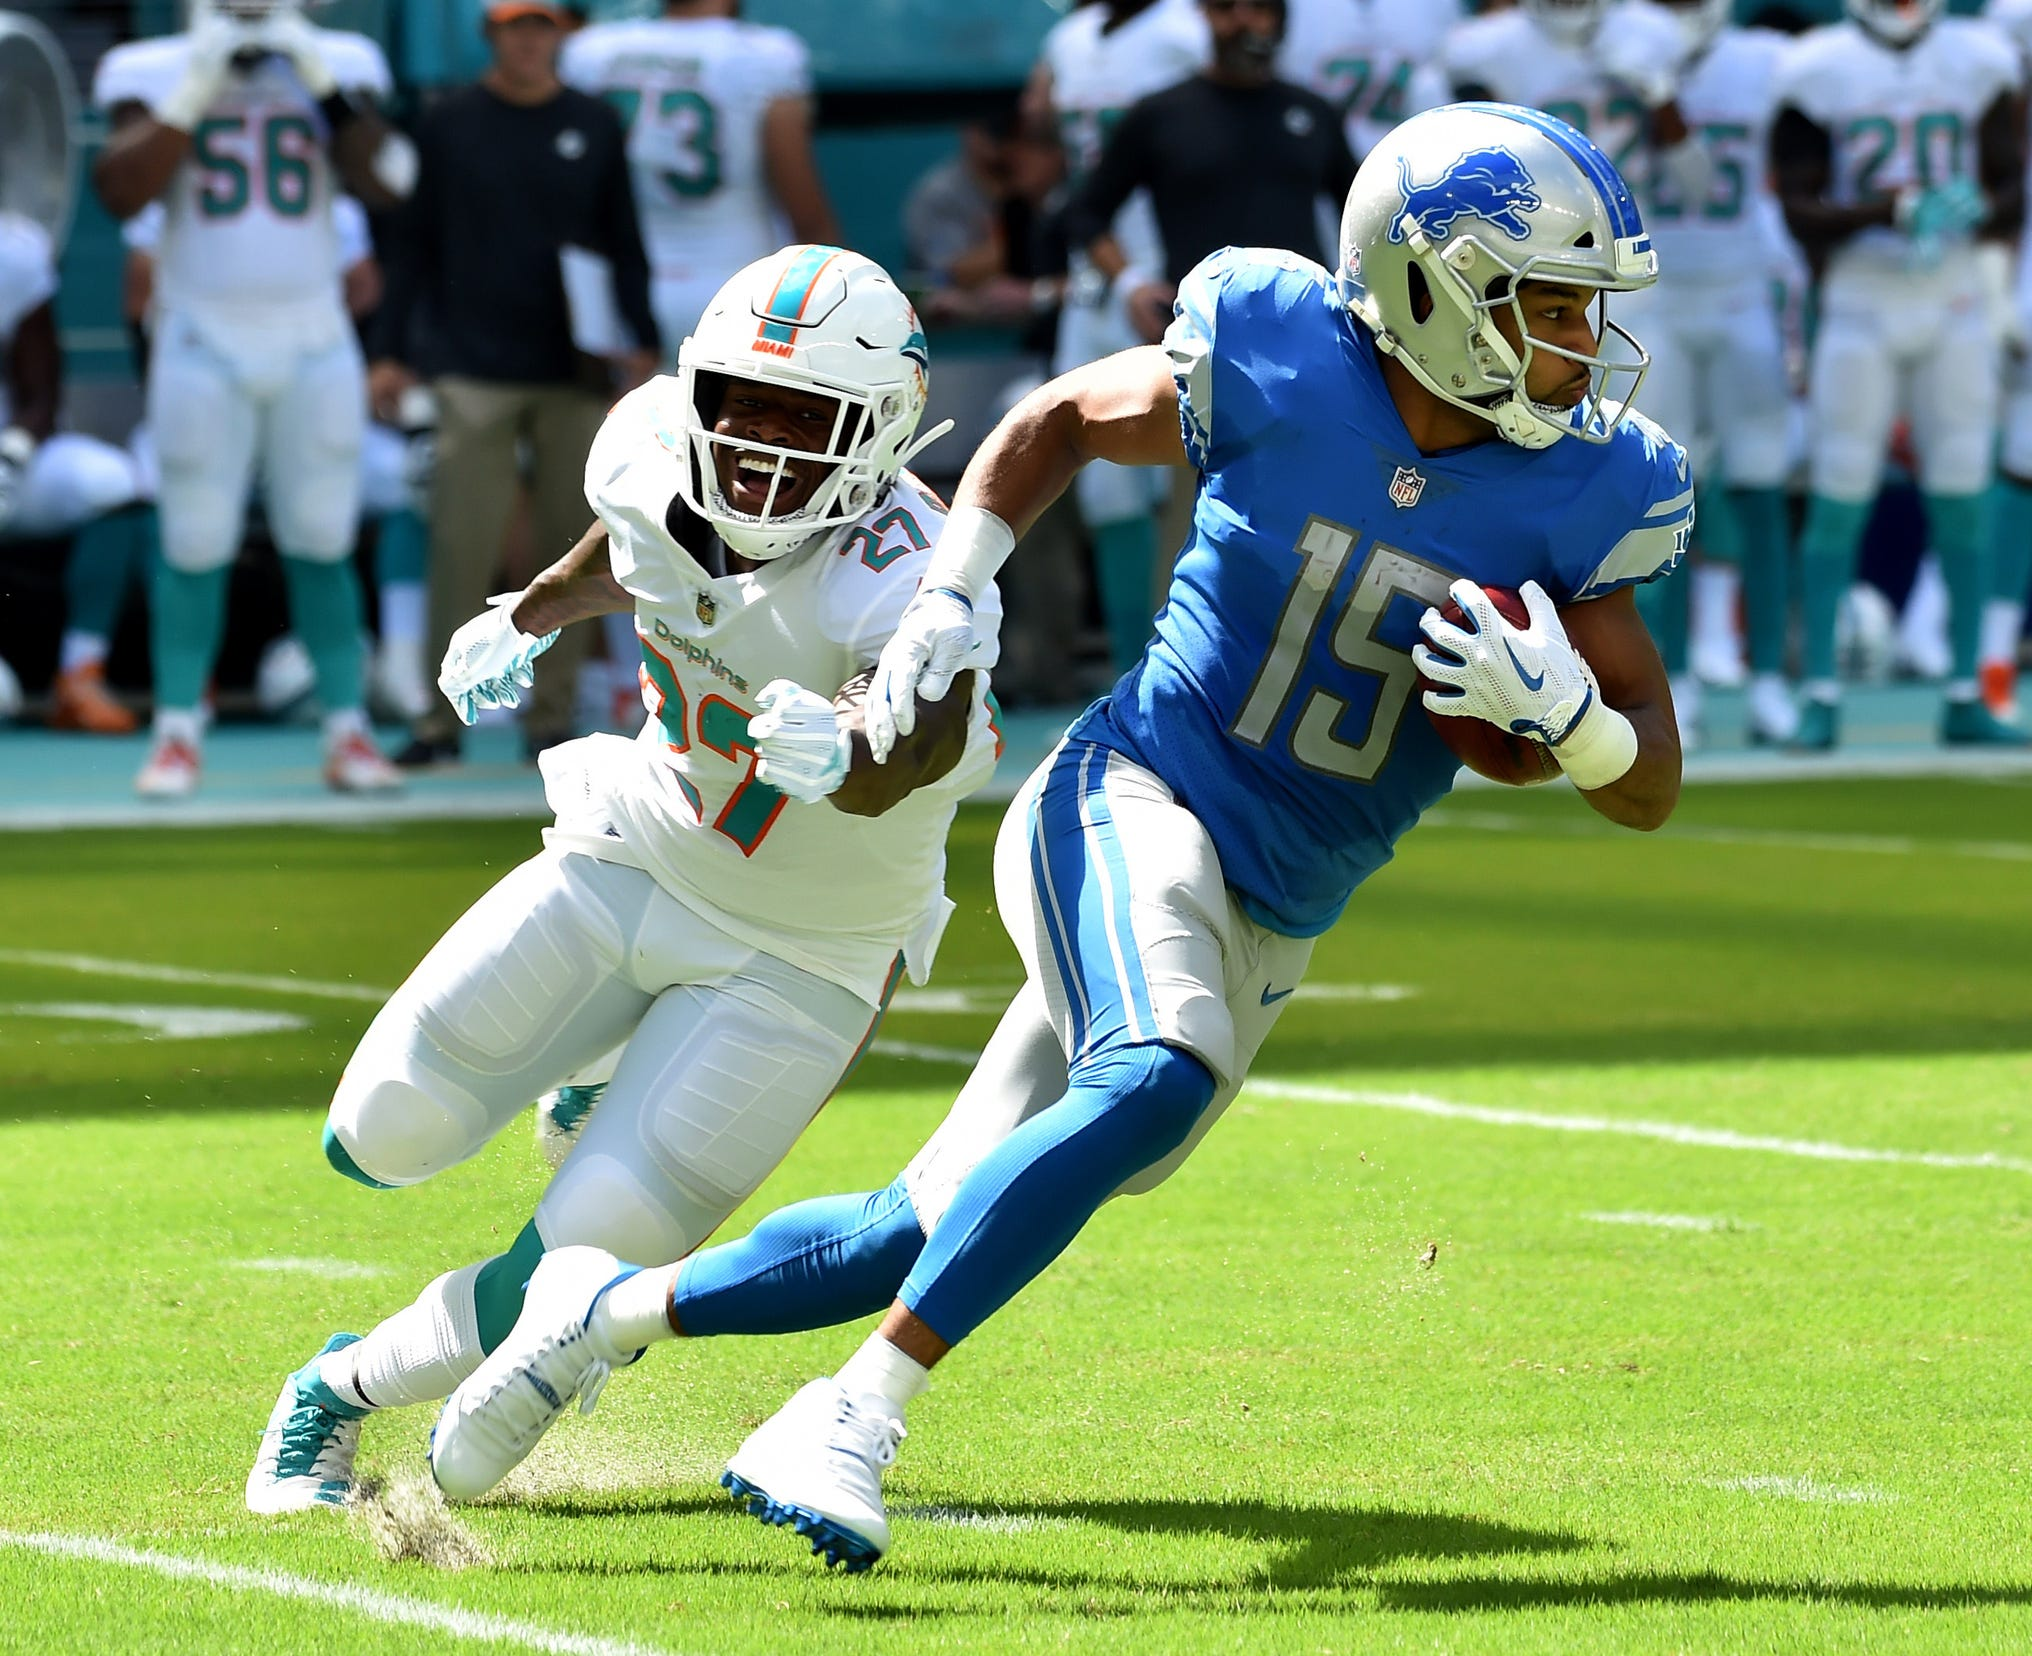 Golden Tate carries the ball against the Dolphins on Oct. 21.